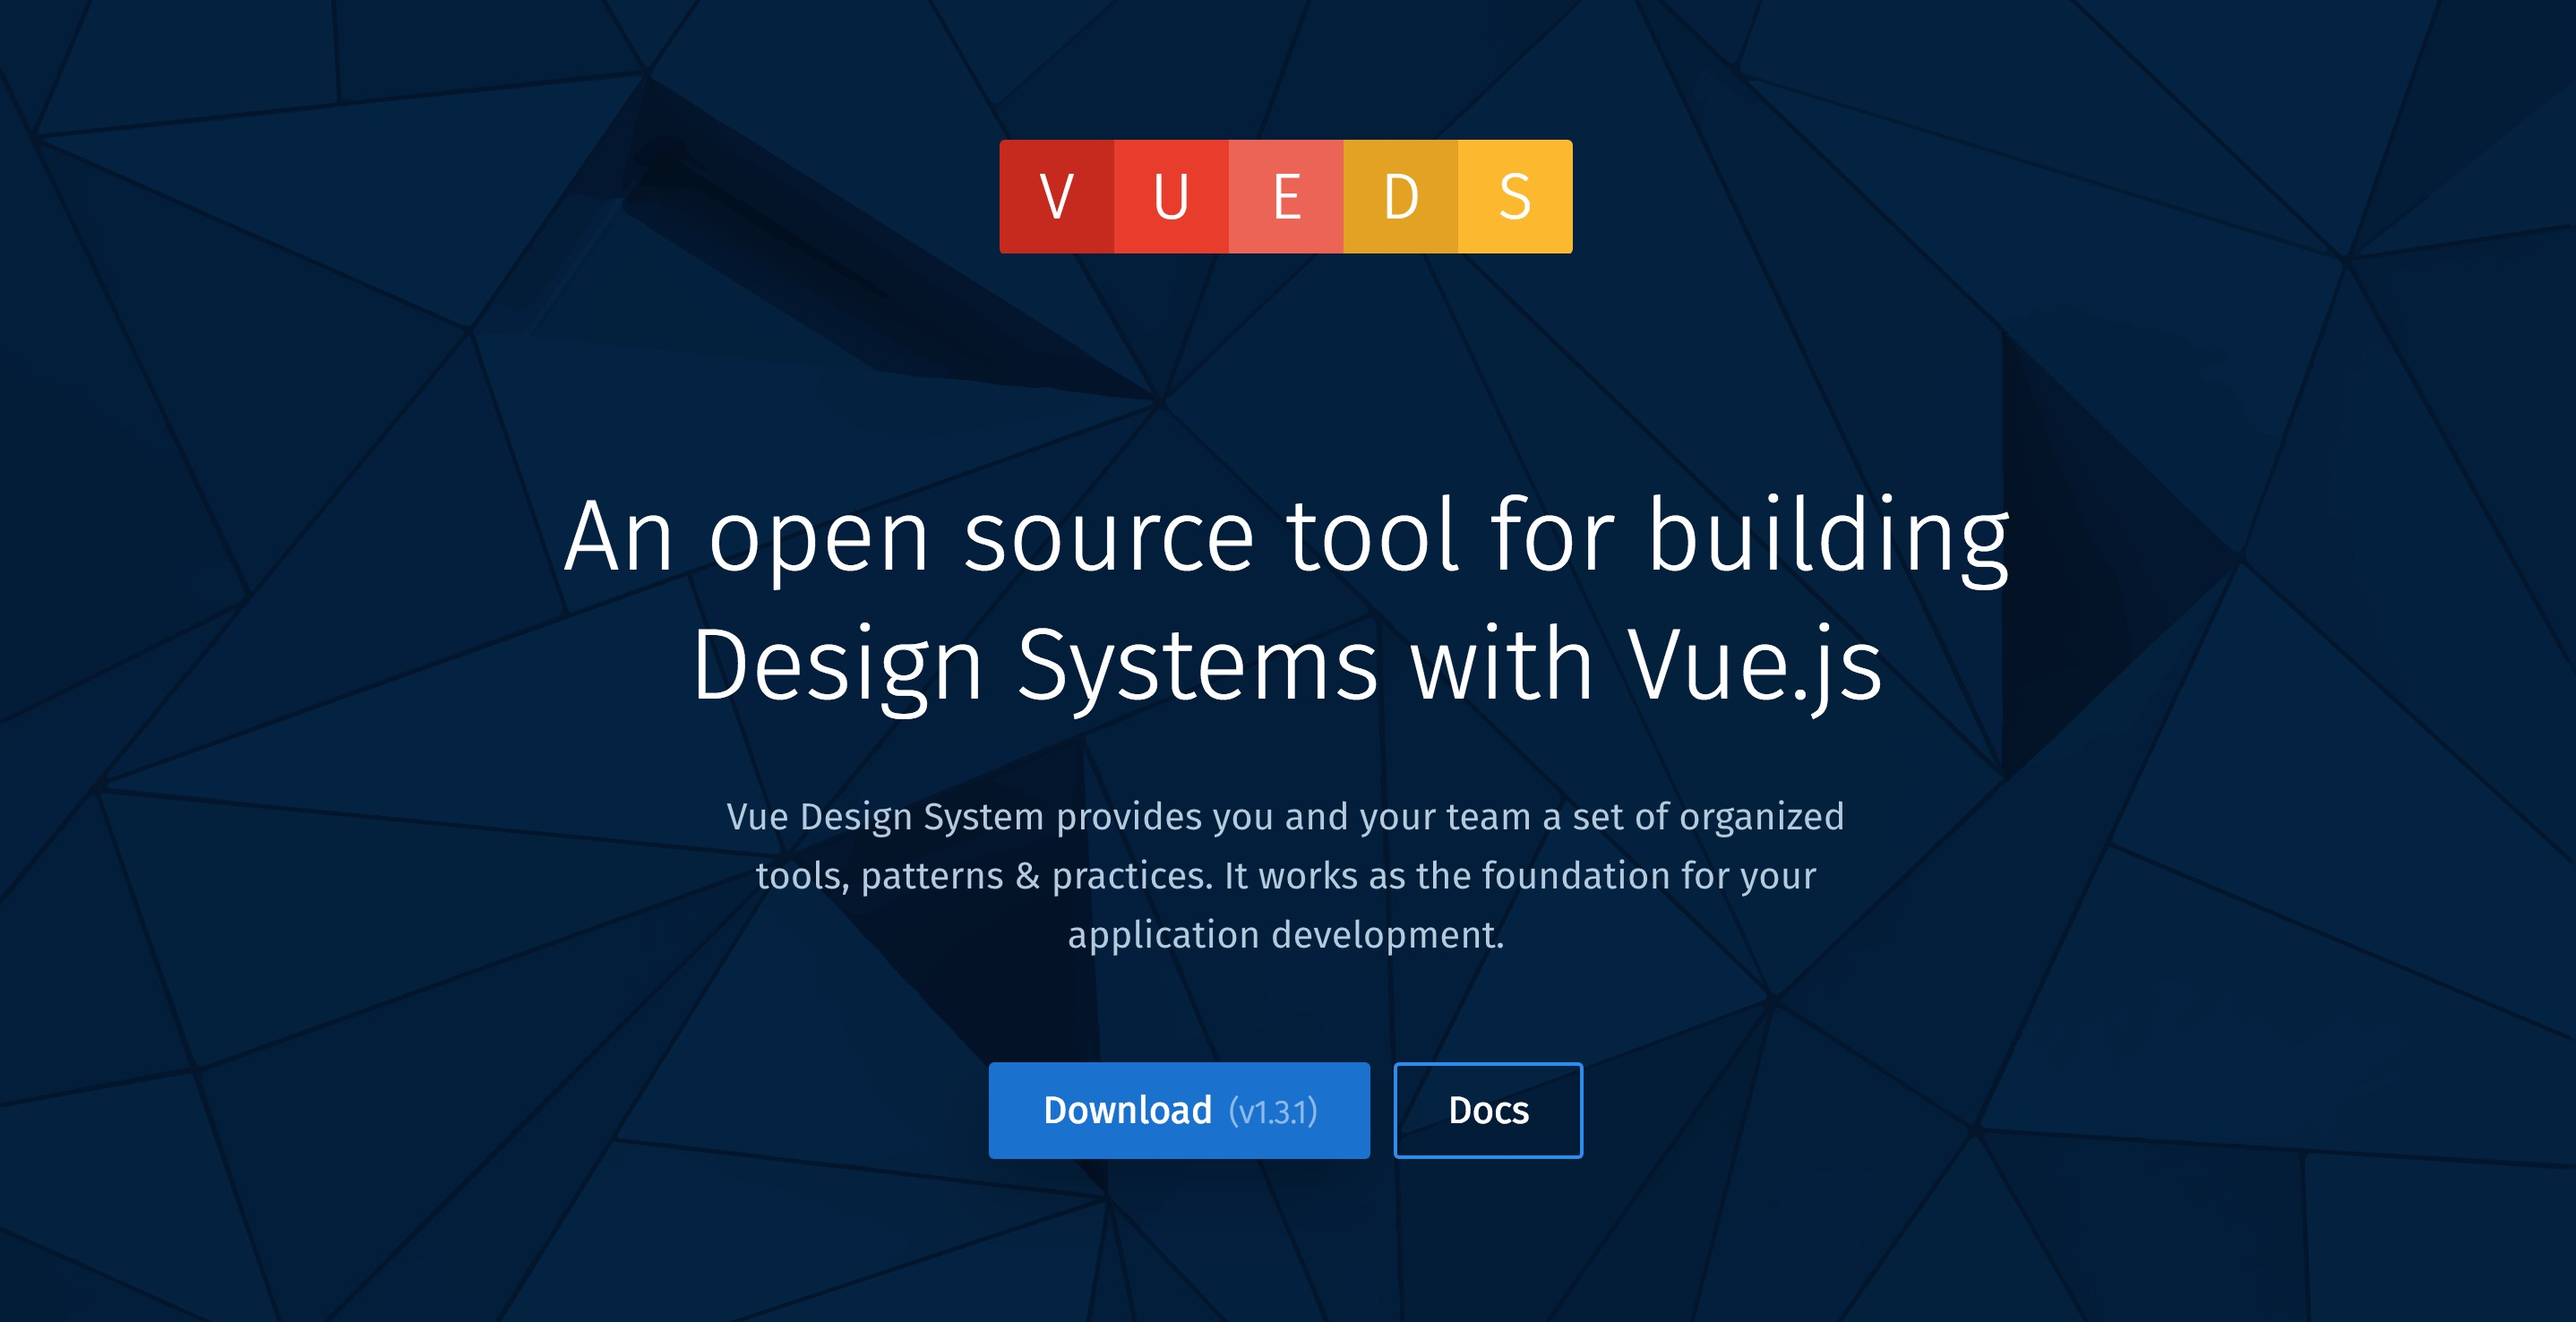 Vue Design Systems